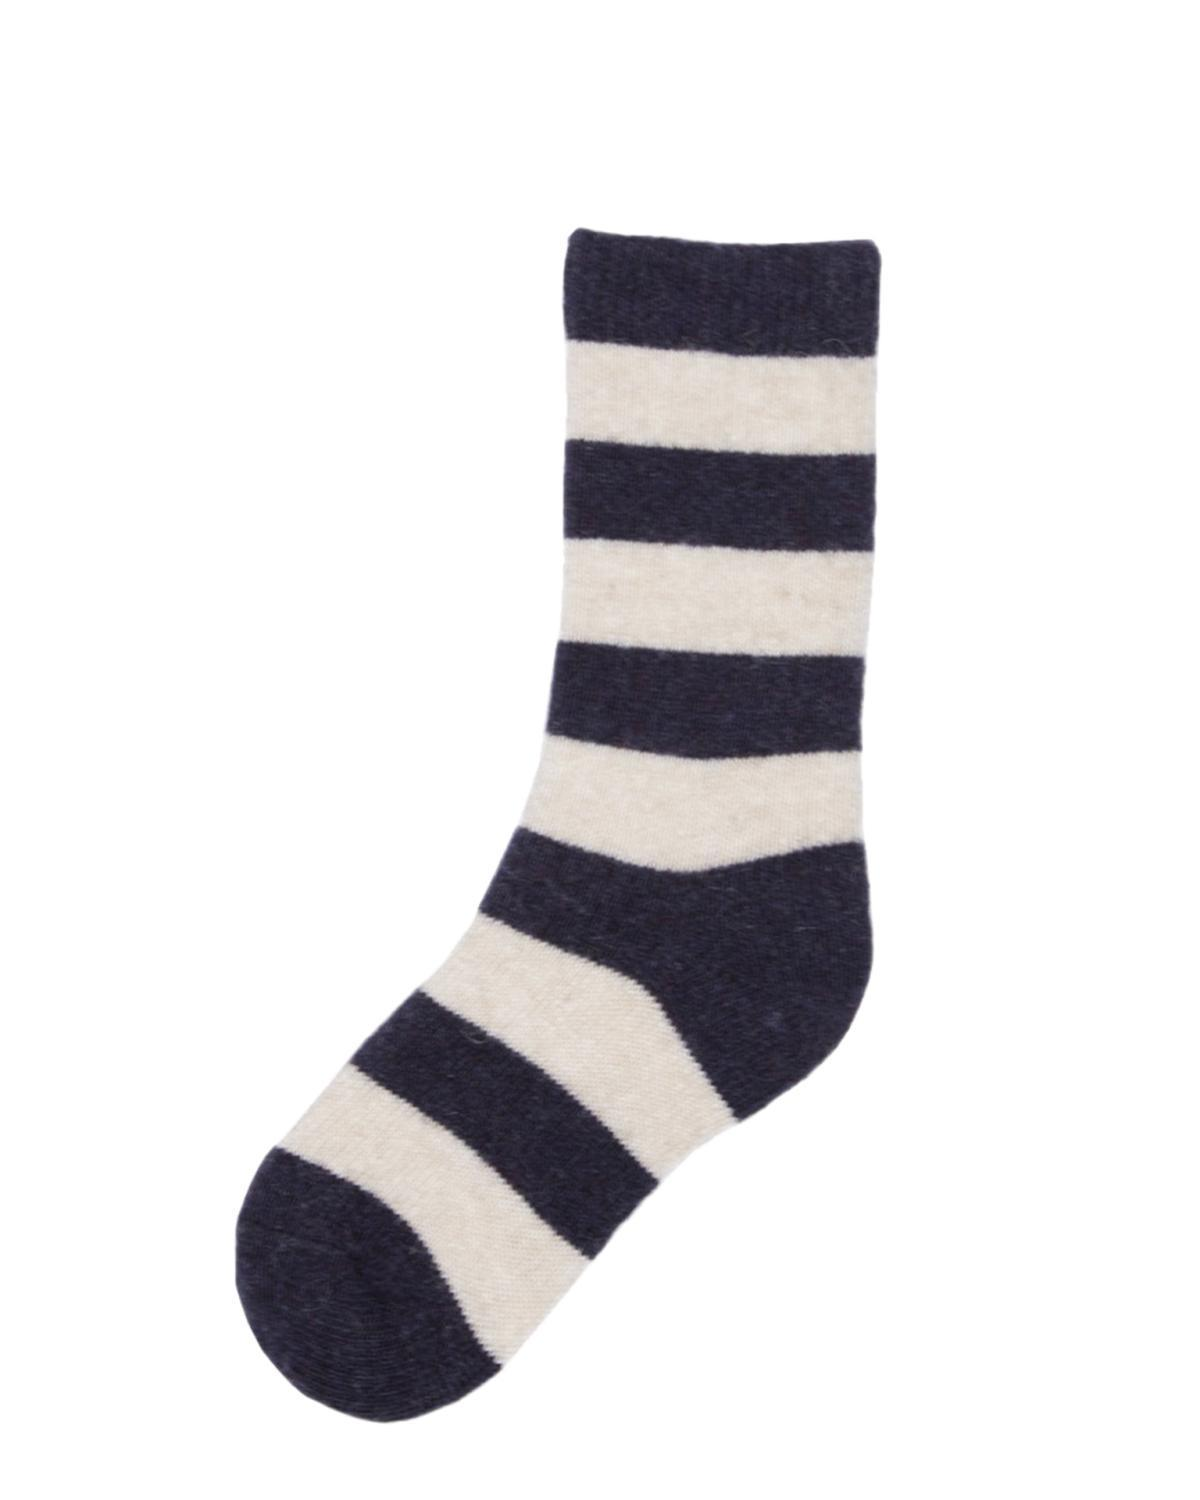 Little lisa b. accessories Navy Rugby Stripe Toddler Socks